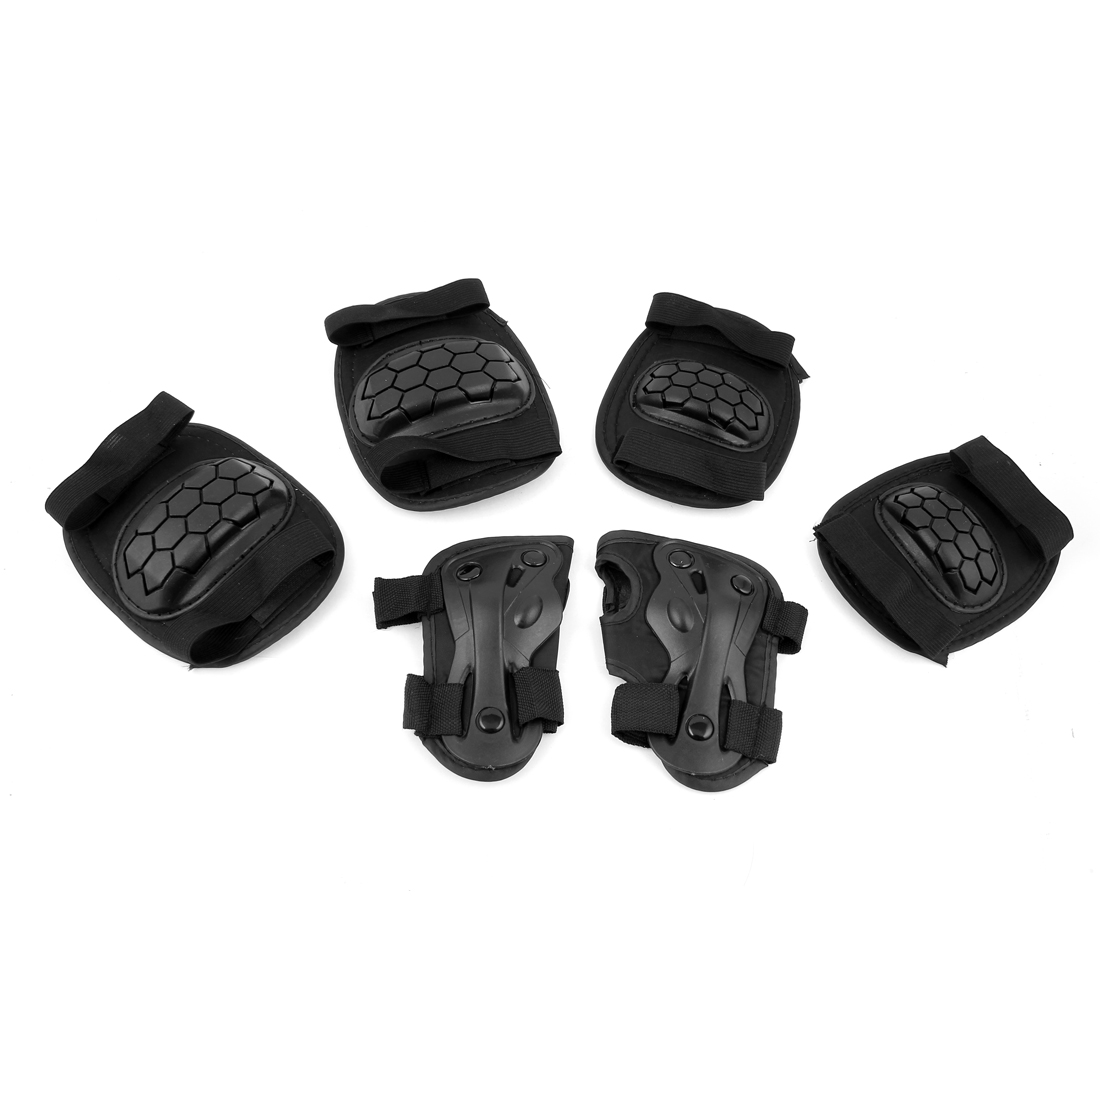 Skiing Skating Elbow Palm Knee Support Guard Pad Protector Set Black 6 in 1